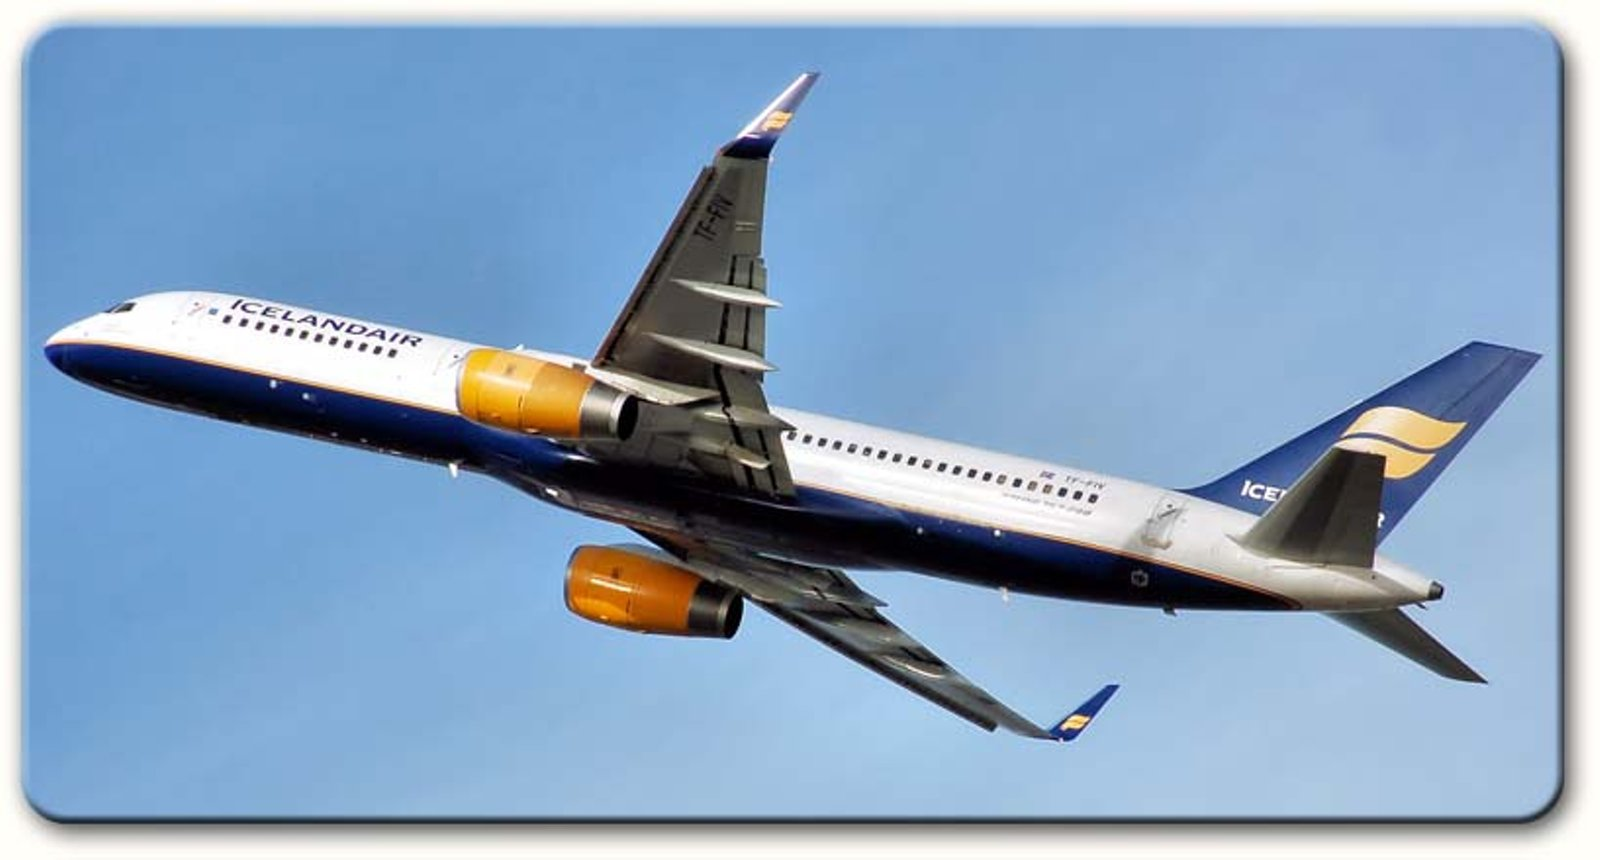 icelandair_b757-800w-shadow.jpg